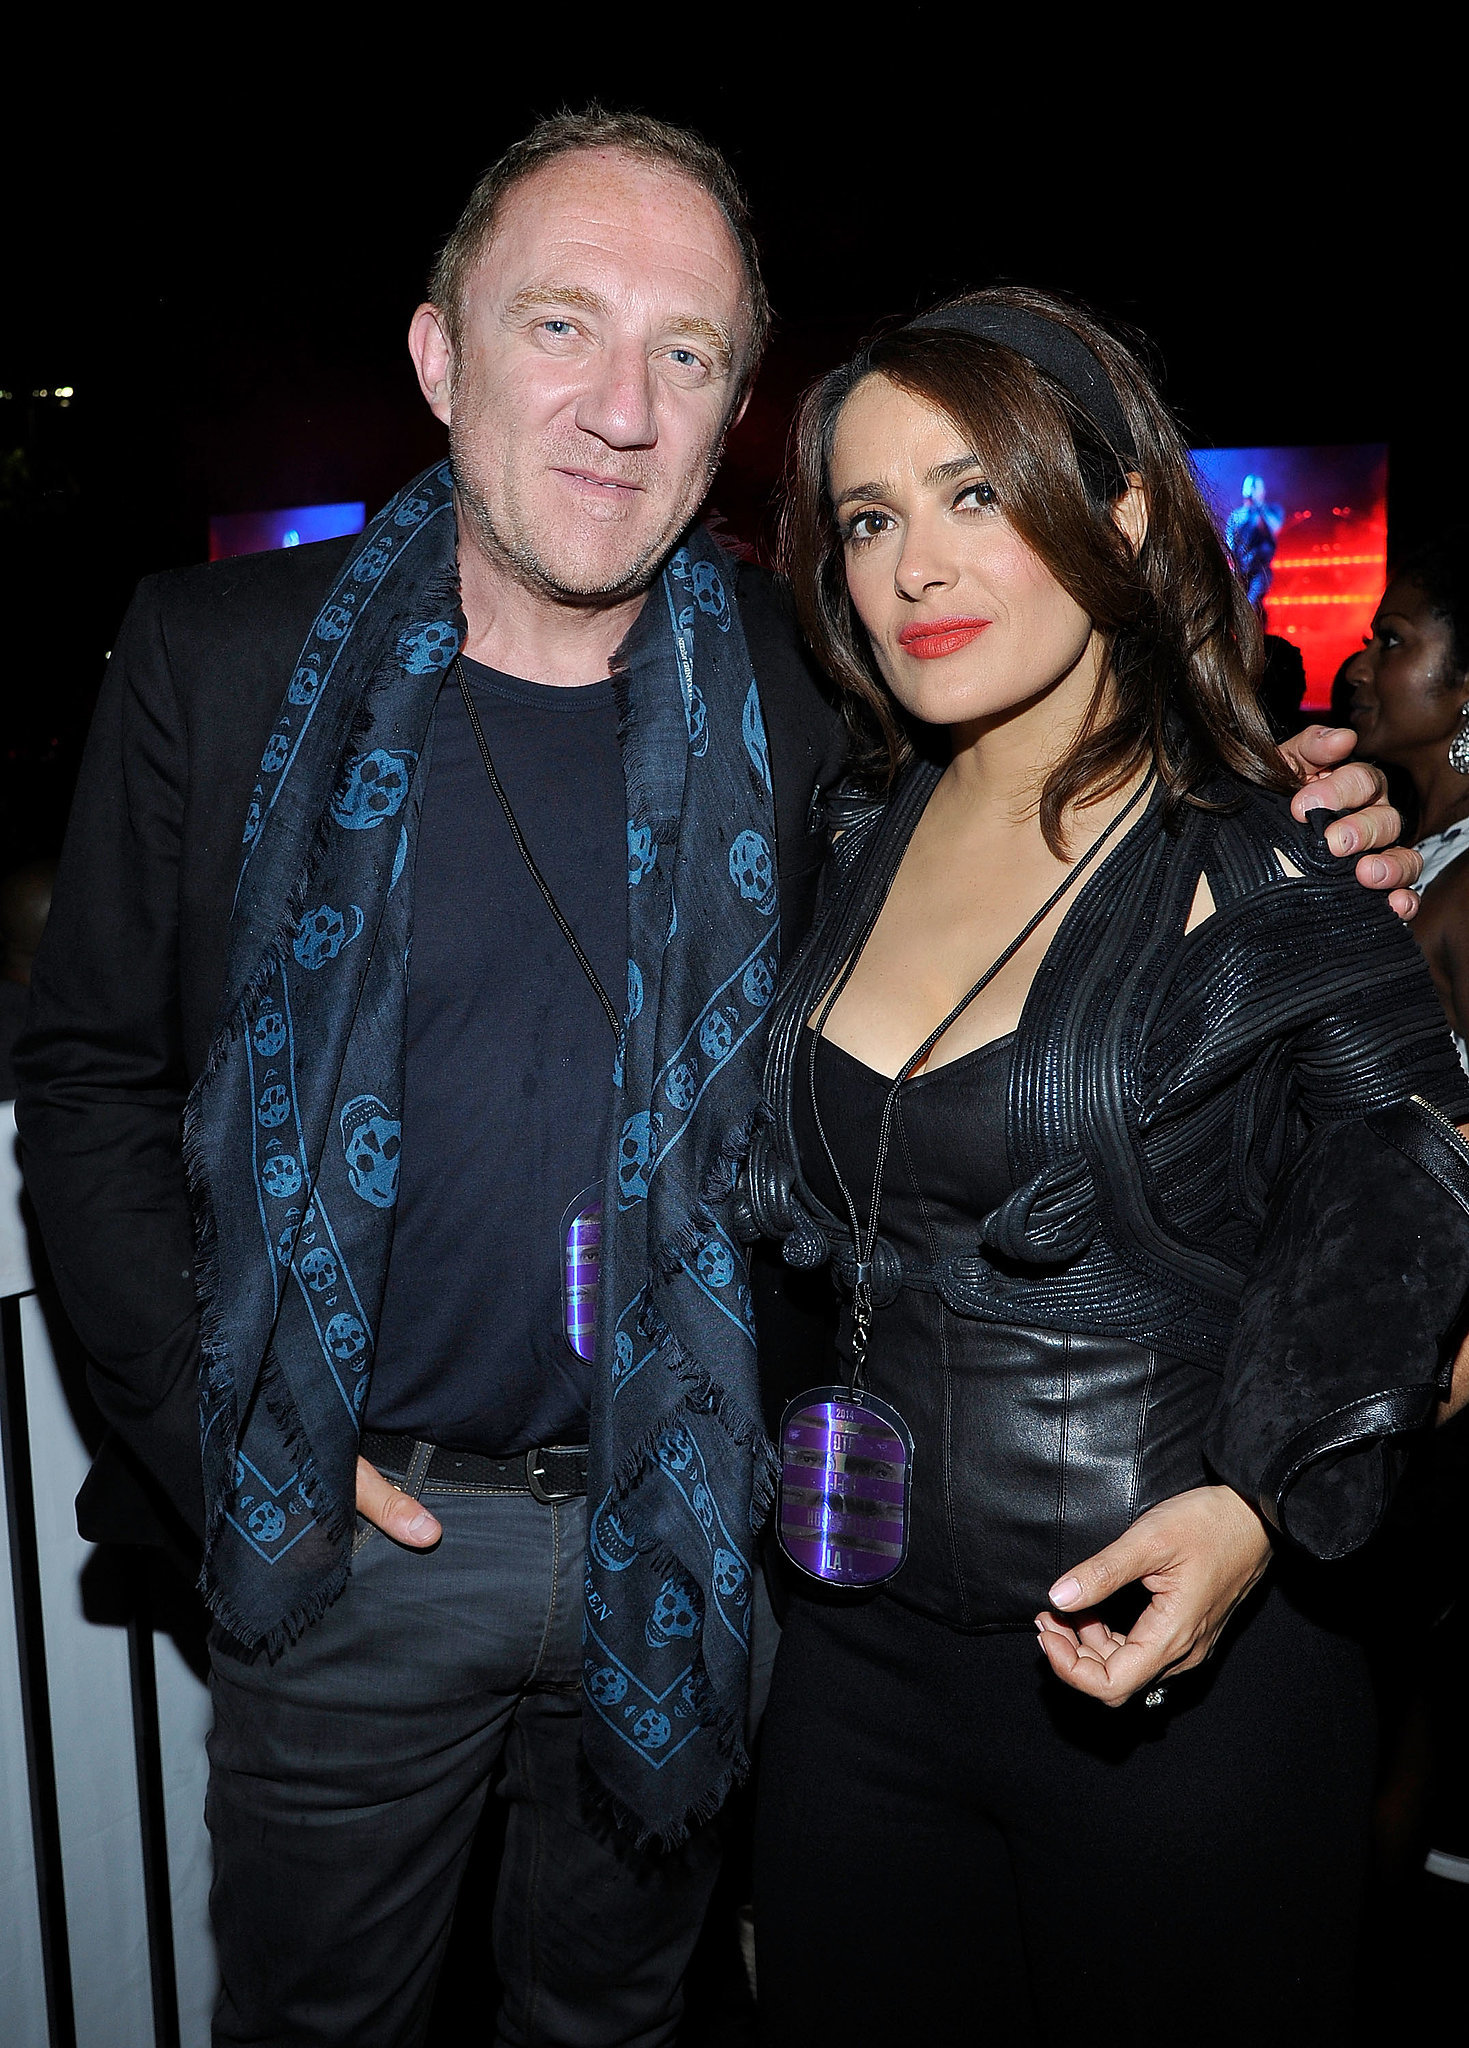 Salma Hayek and Francois-Henri Pinault attended the show on Saturday.